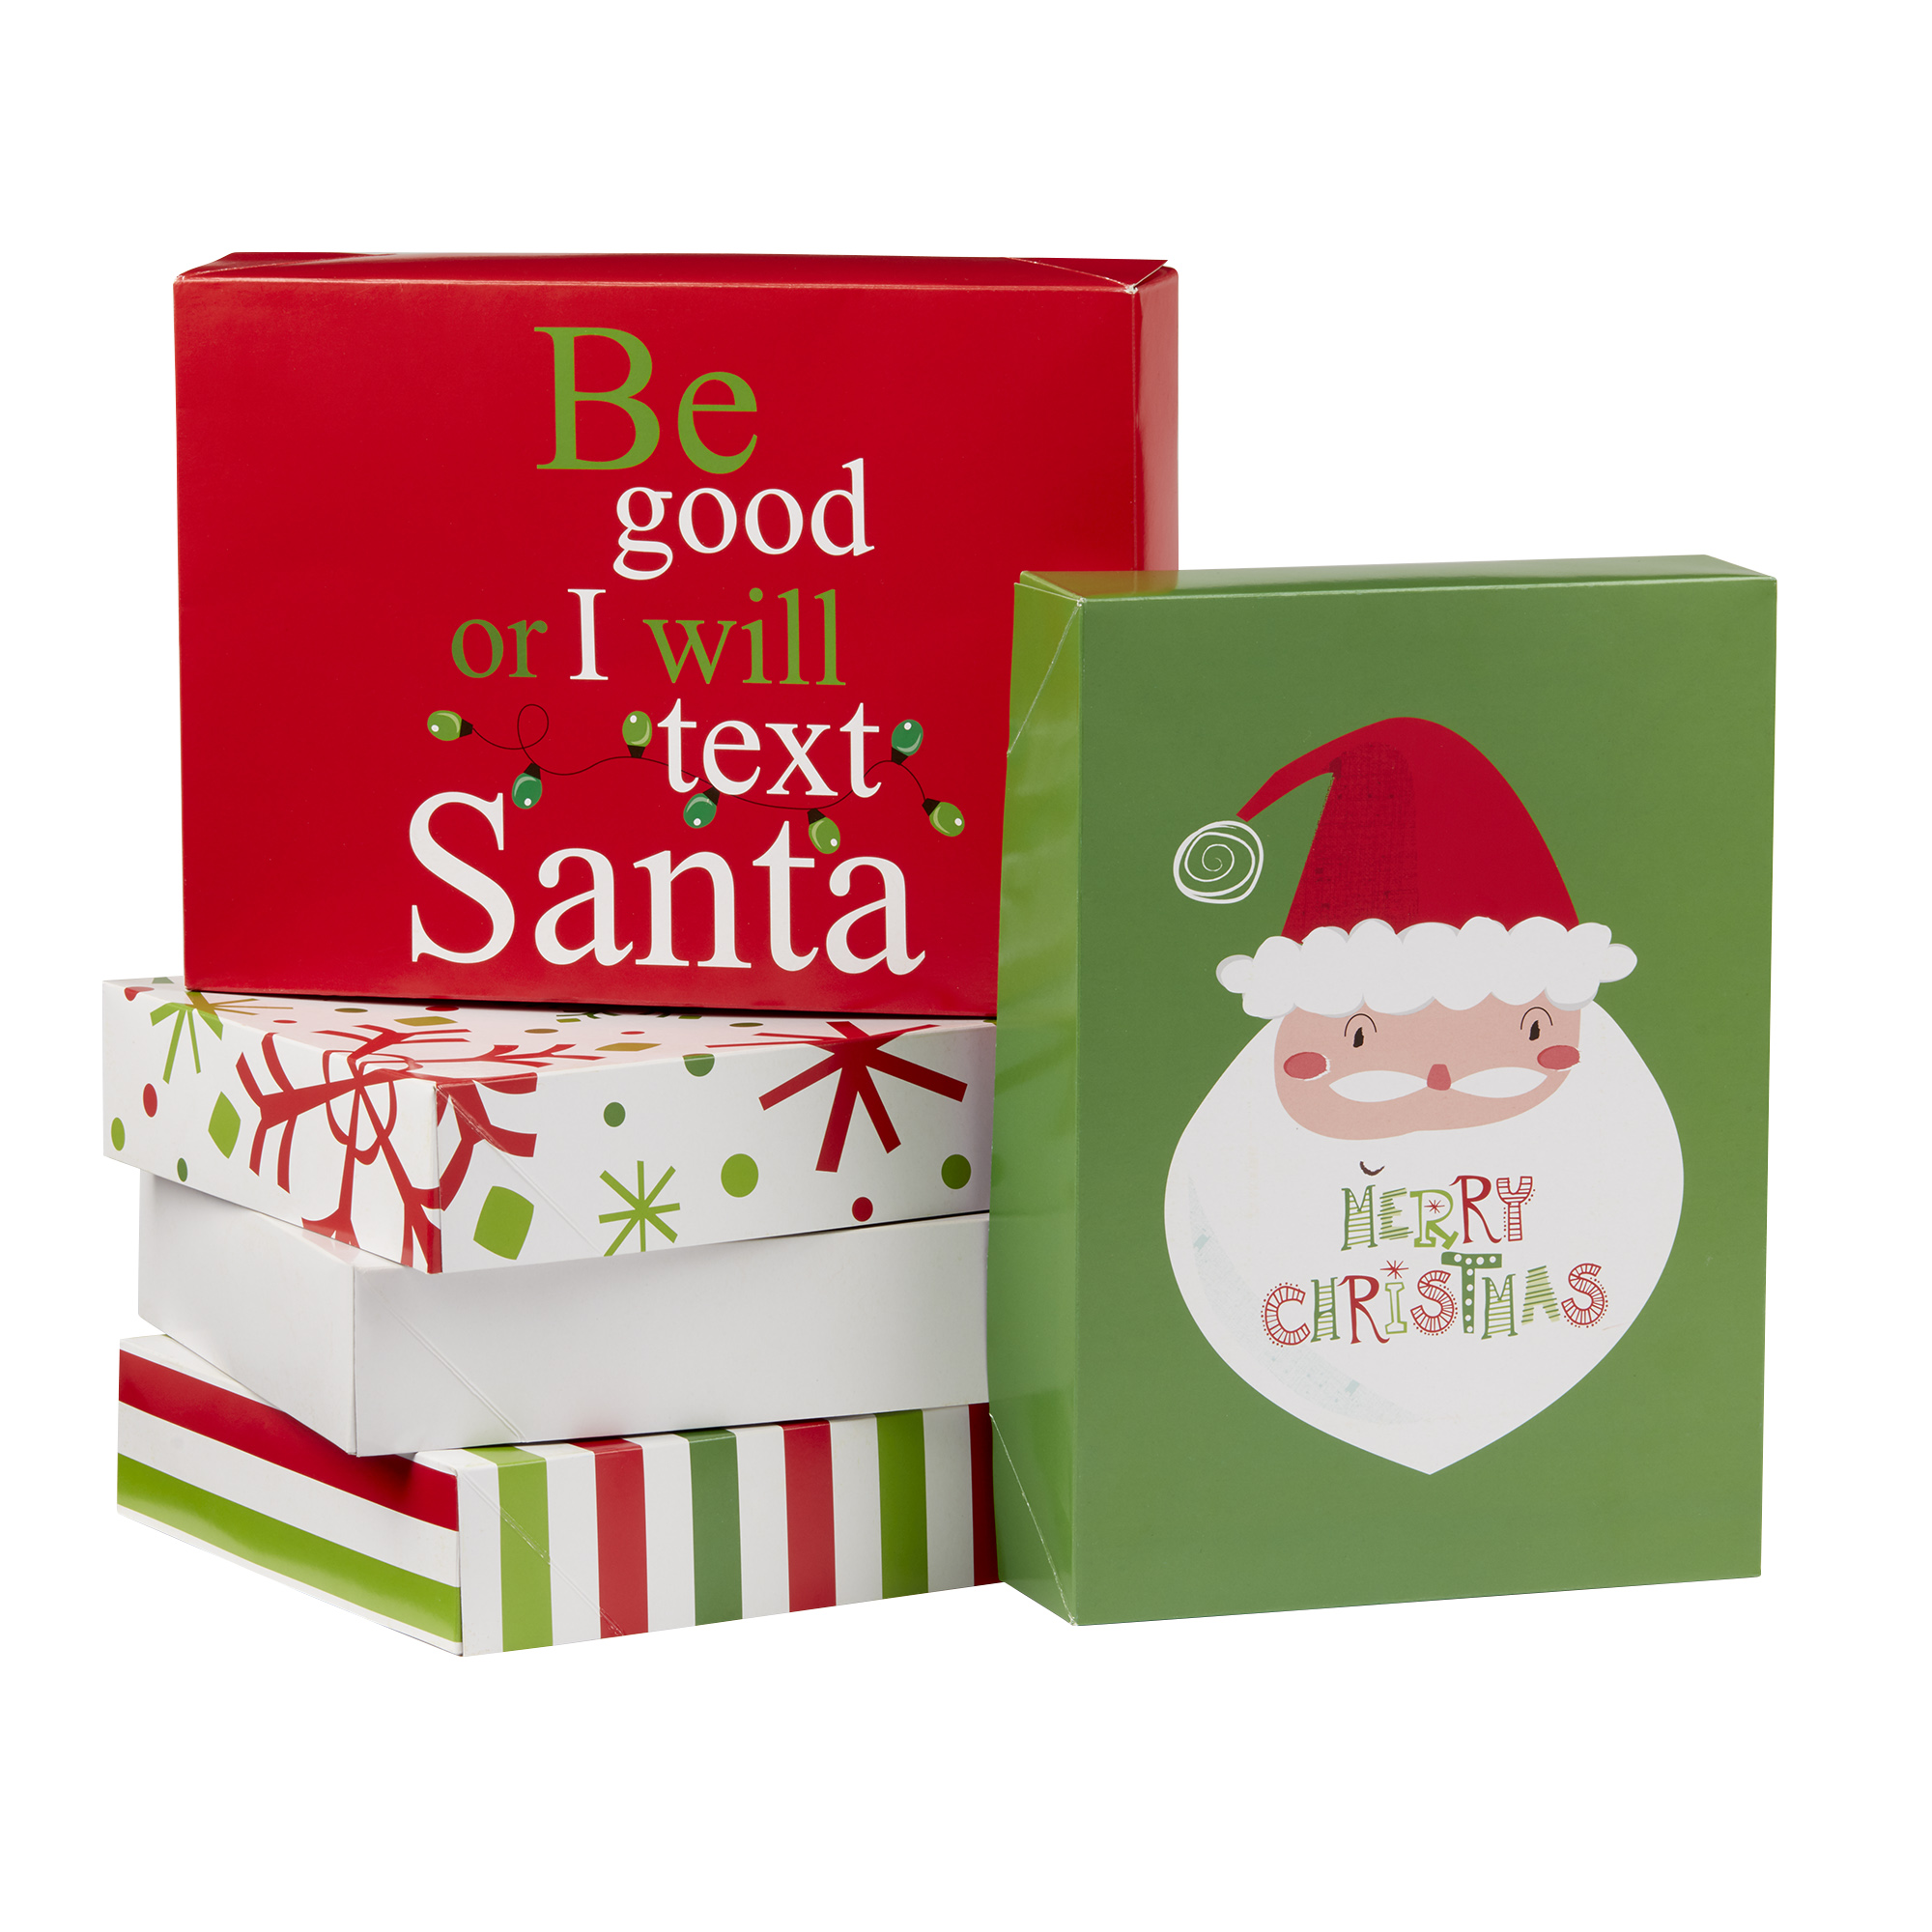 Holiday Time Decorative Gift Box Set, Santa Claus Theme, 5 Count